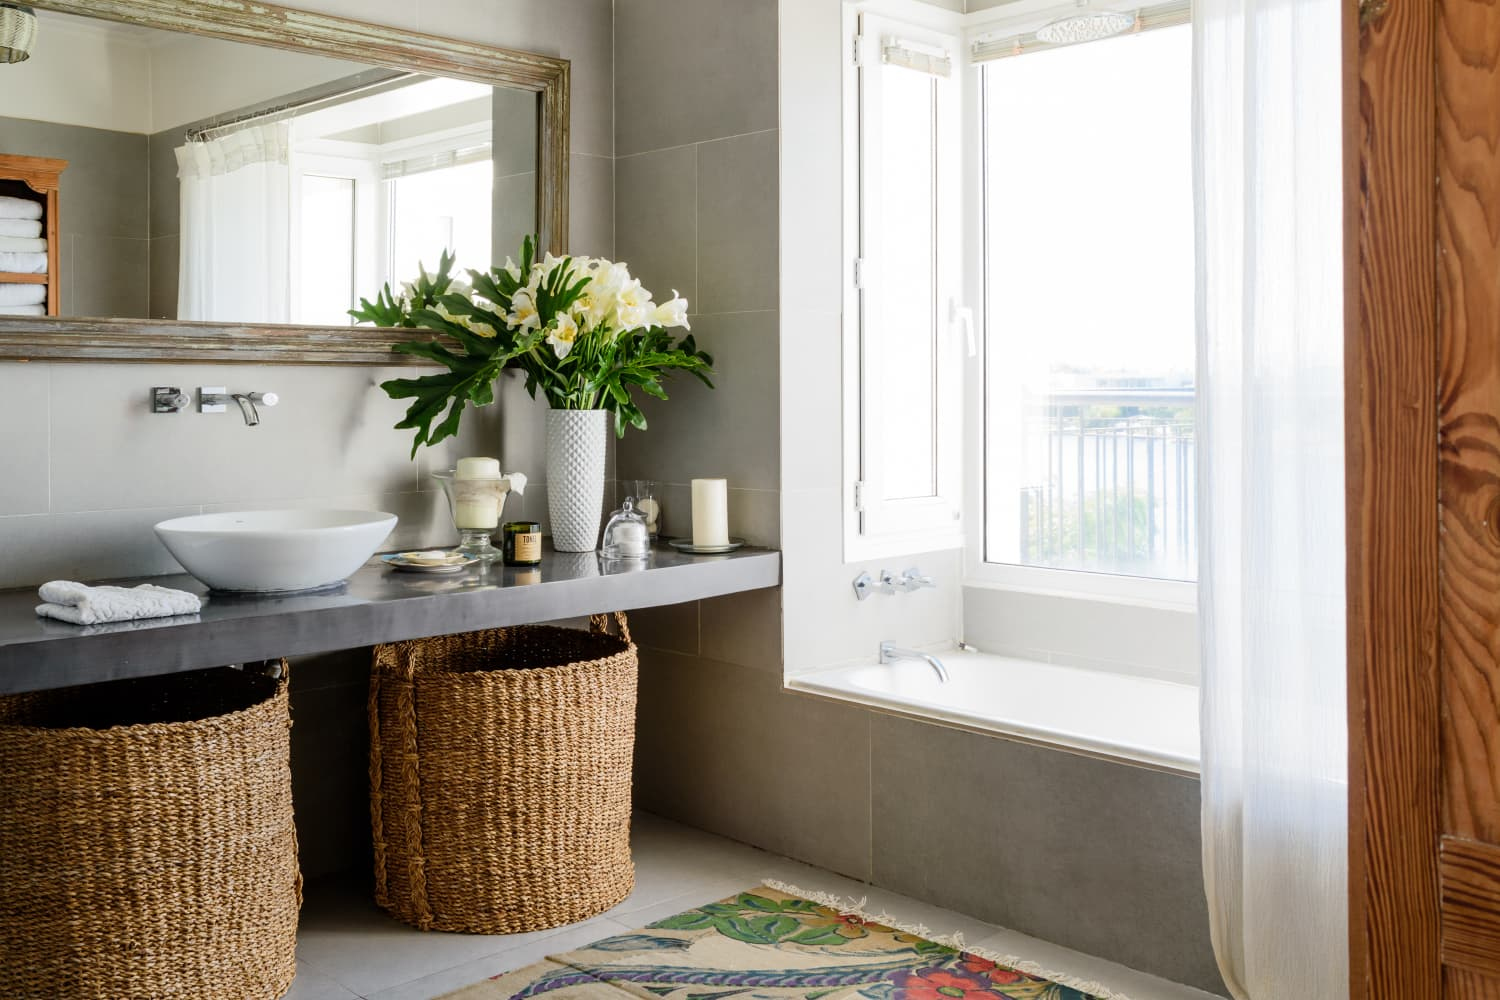 The One Thing You Should Always Have In Your Bathroom, According to a Very Wise Realtor